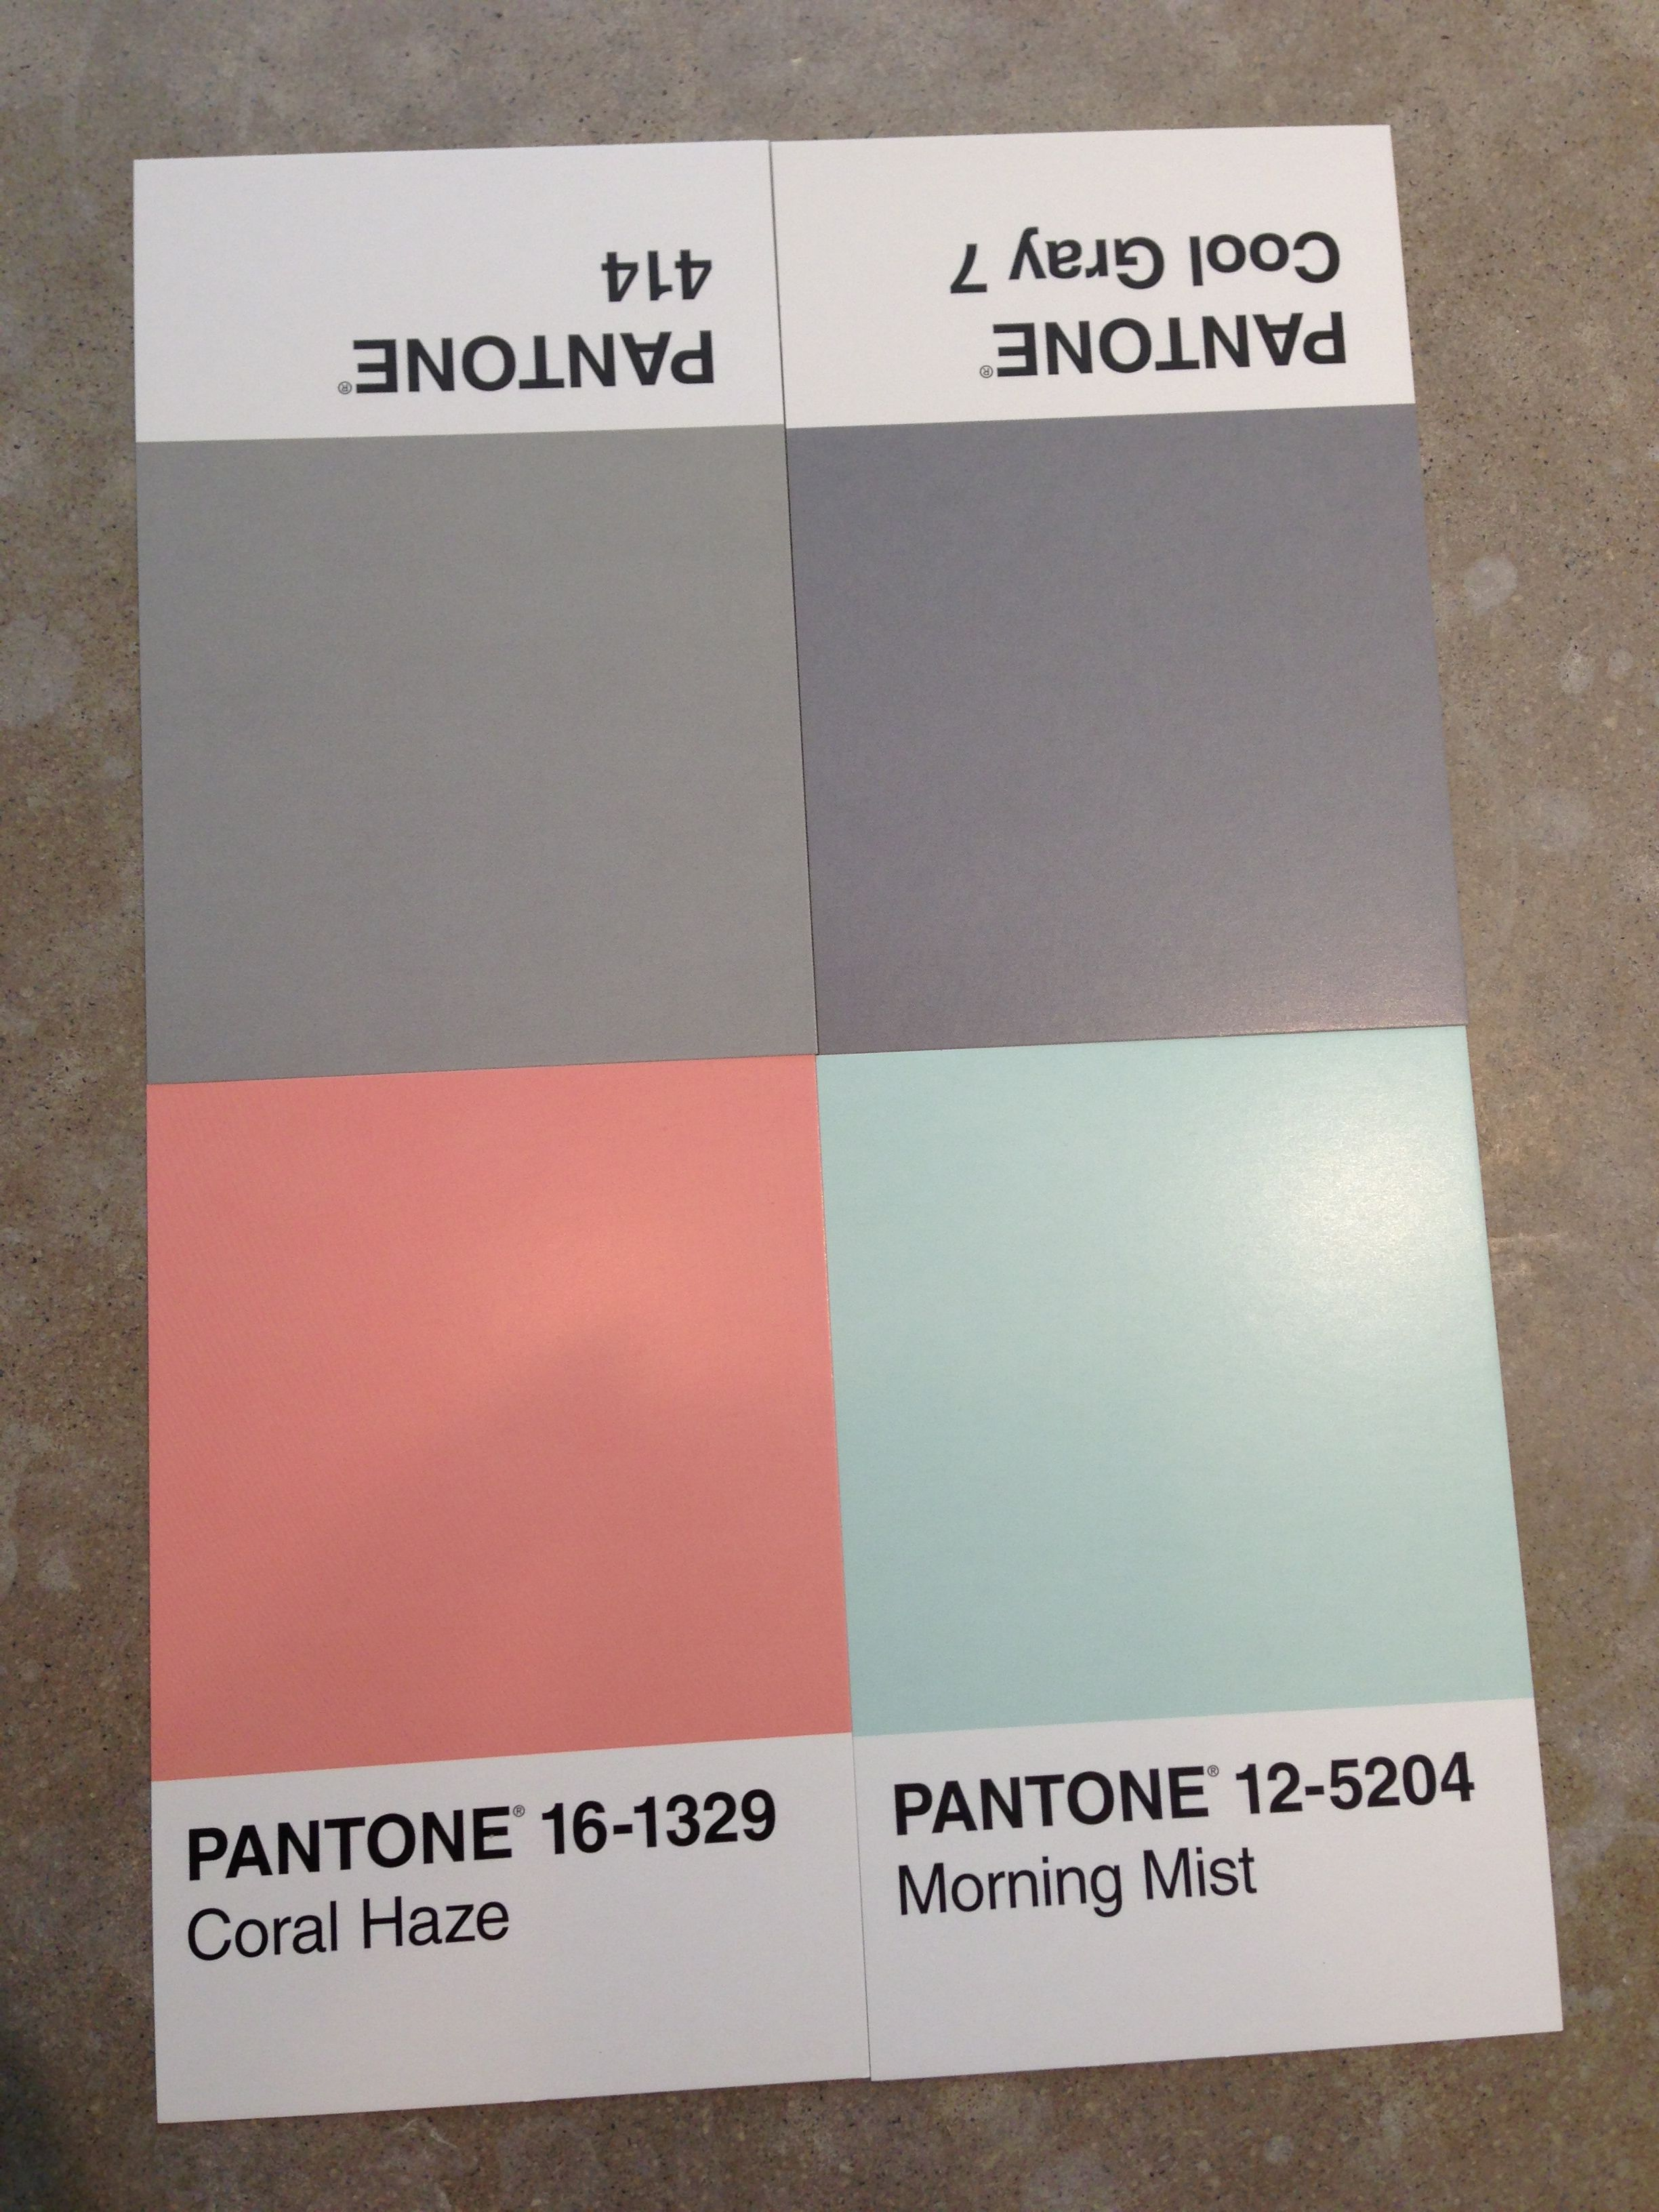 Superb Aqua For Girls Bedroom Grey, Coral And Aqua Paint Inspiration   The Wedding  Emporium Brandingu2026